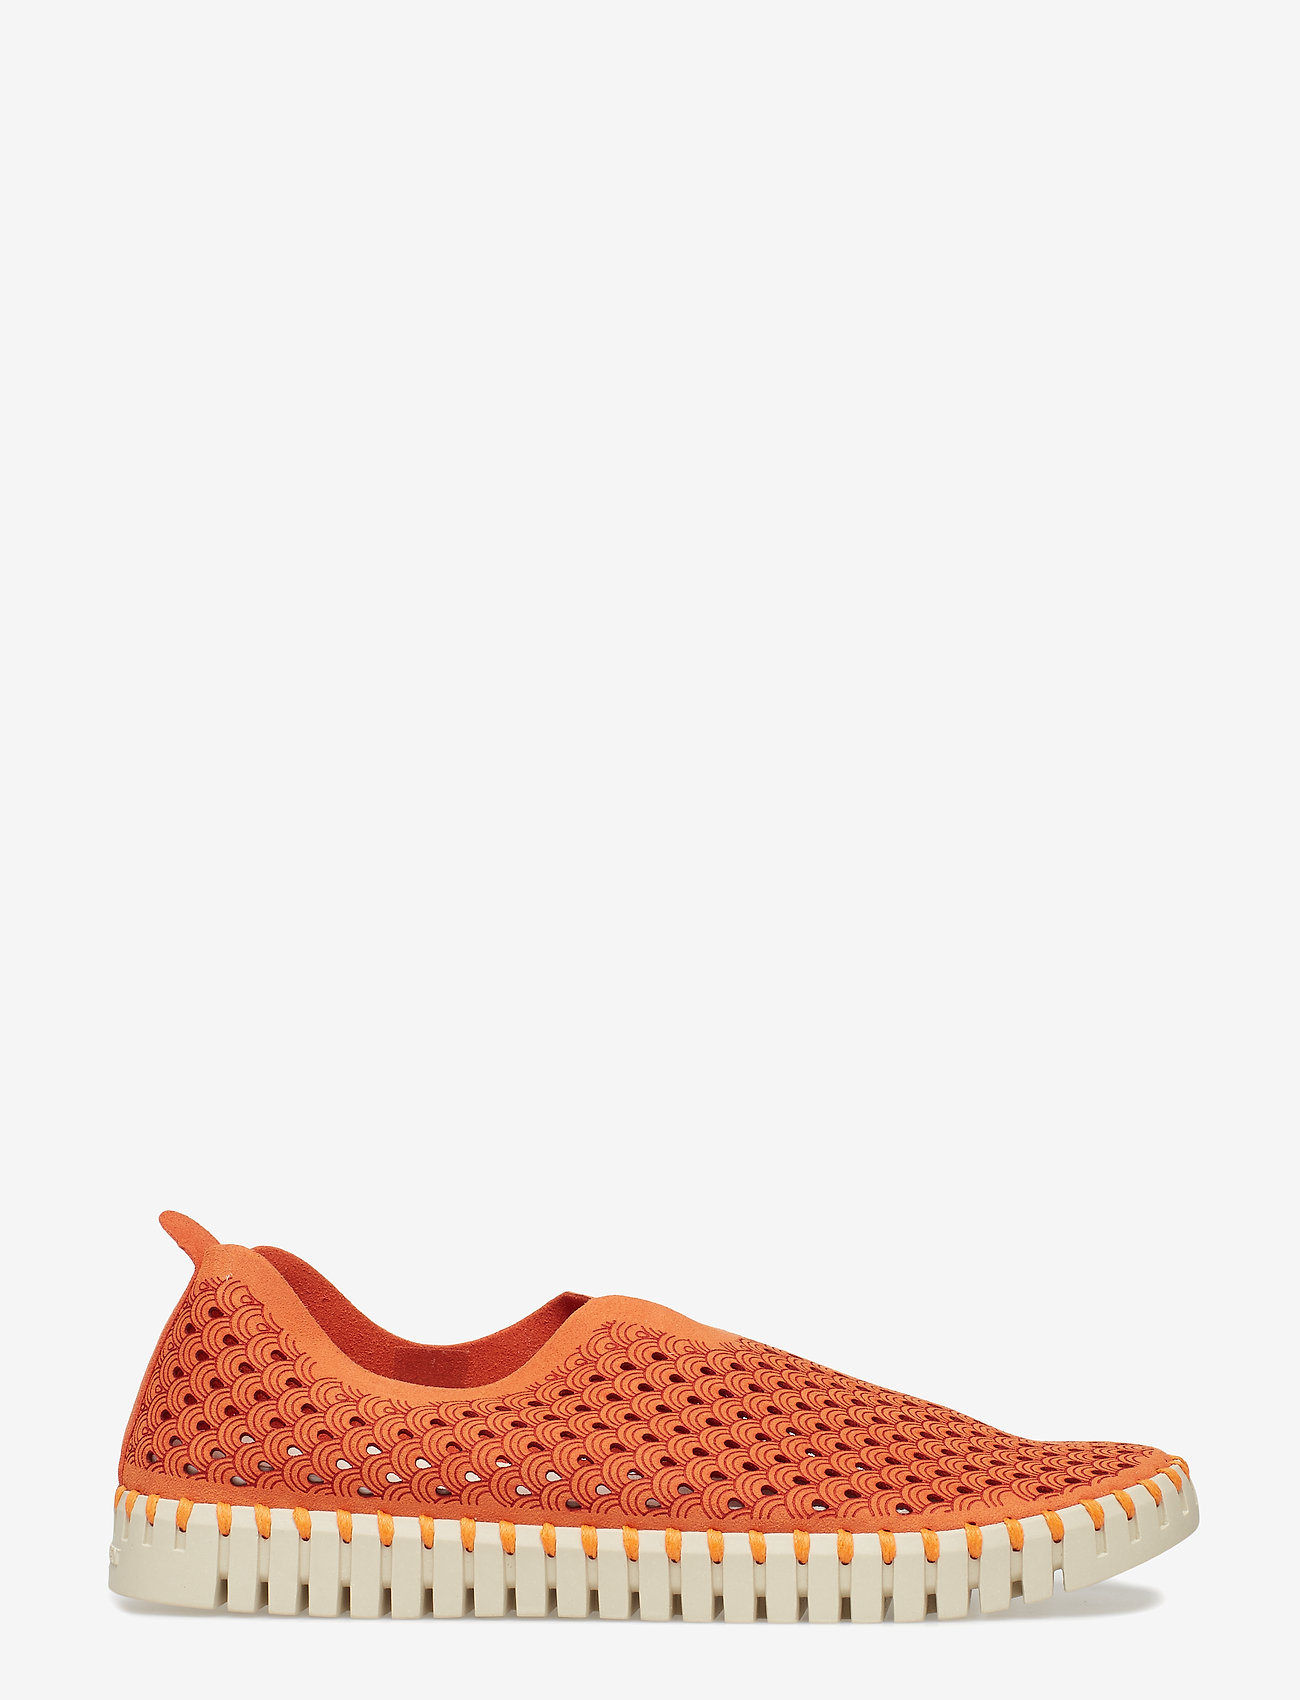 Ilse Jacobsen - Flats - slip-on sneakers - camelia - 1